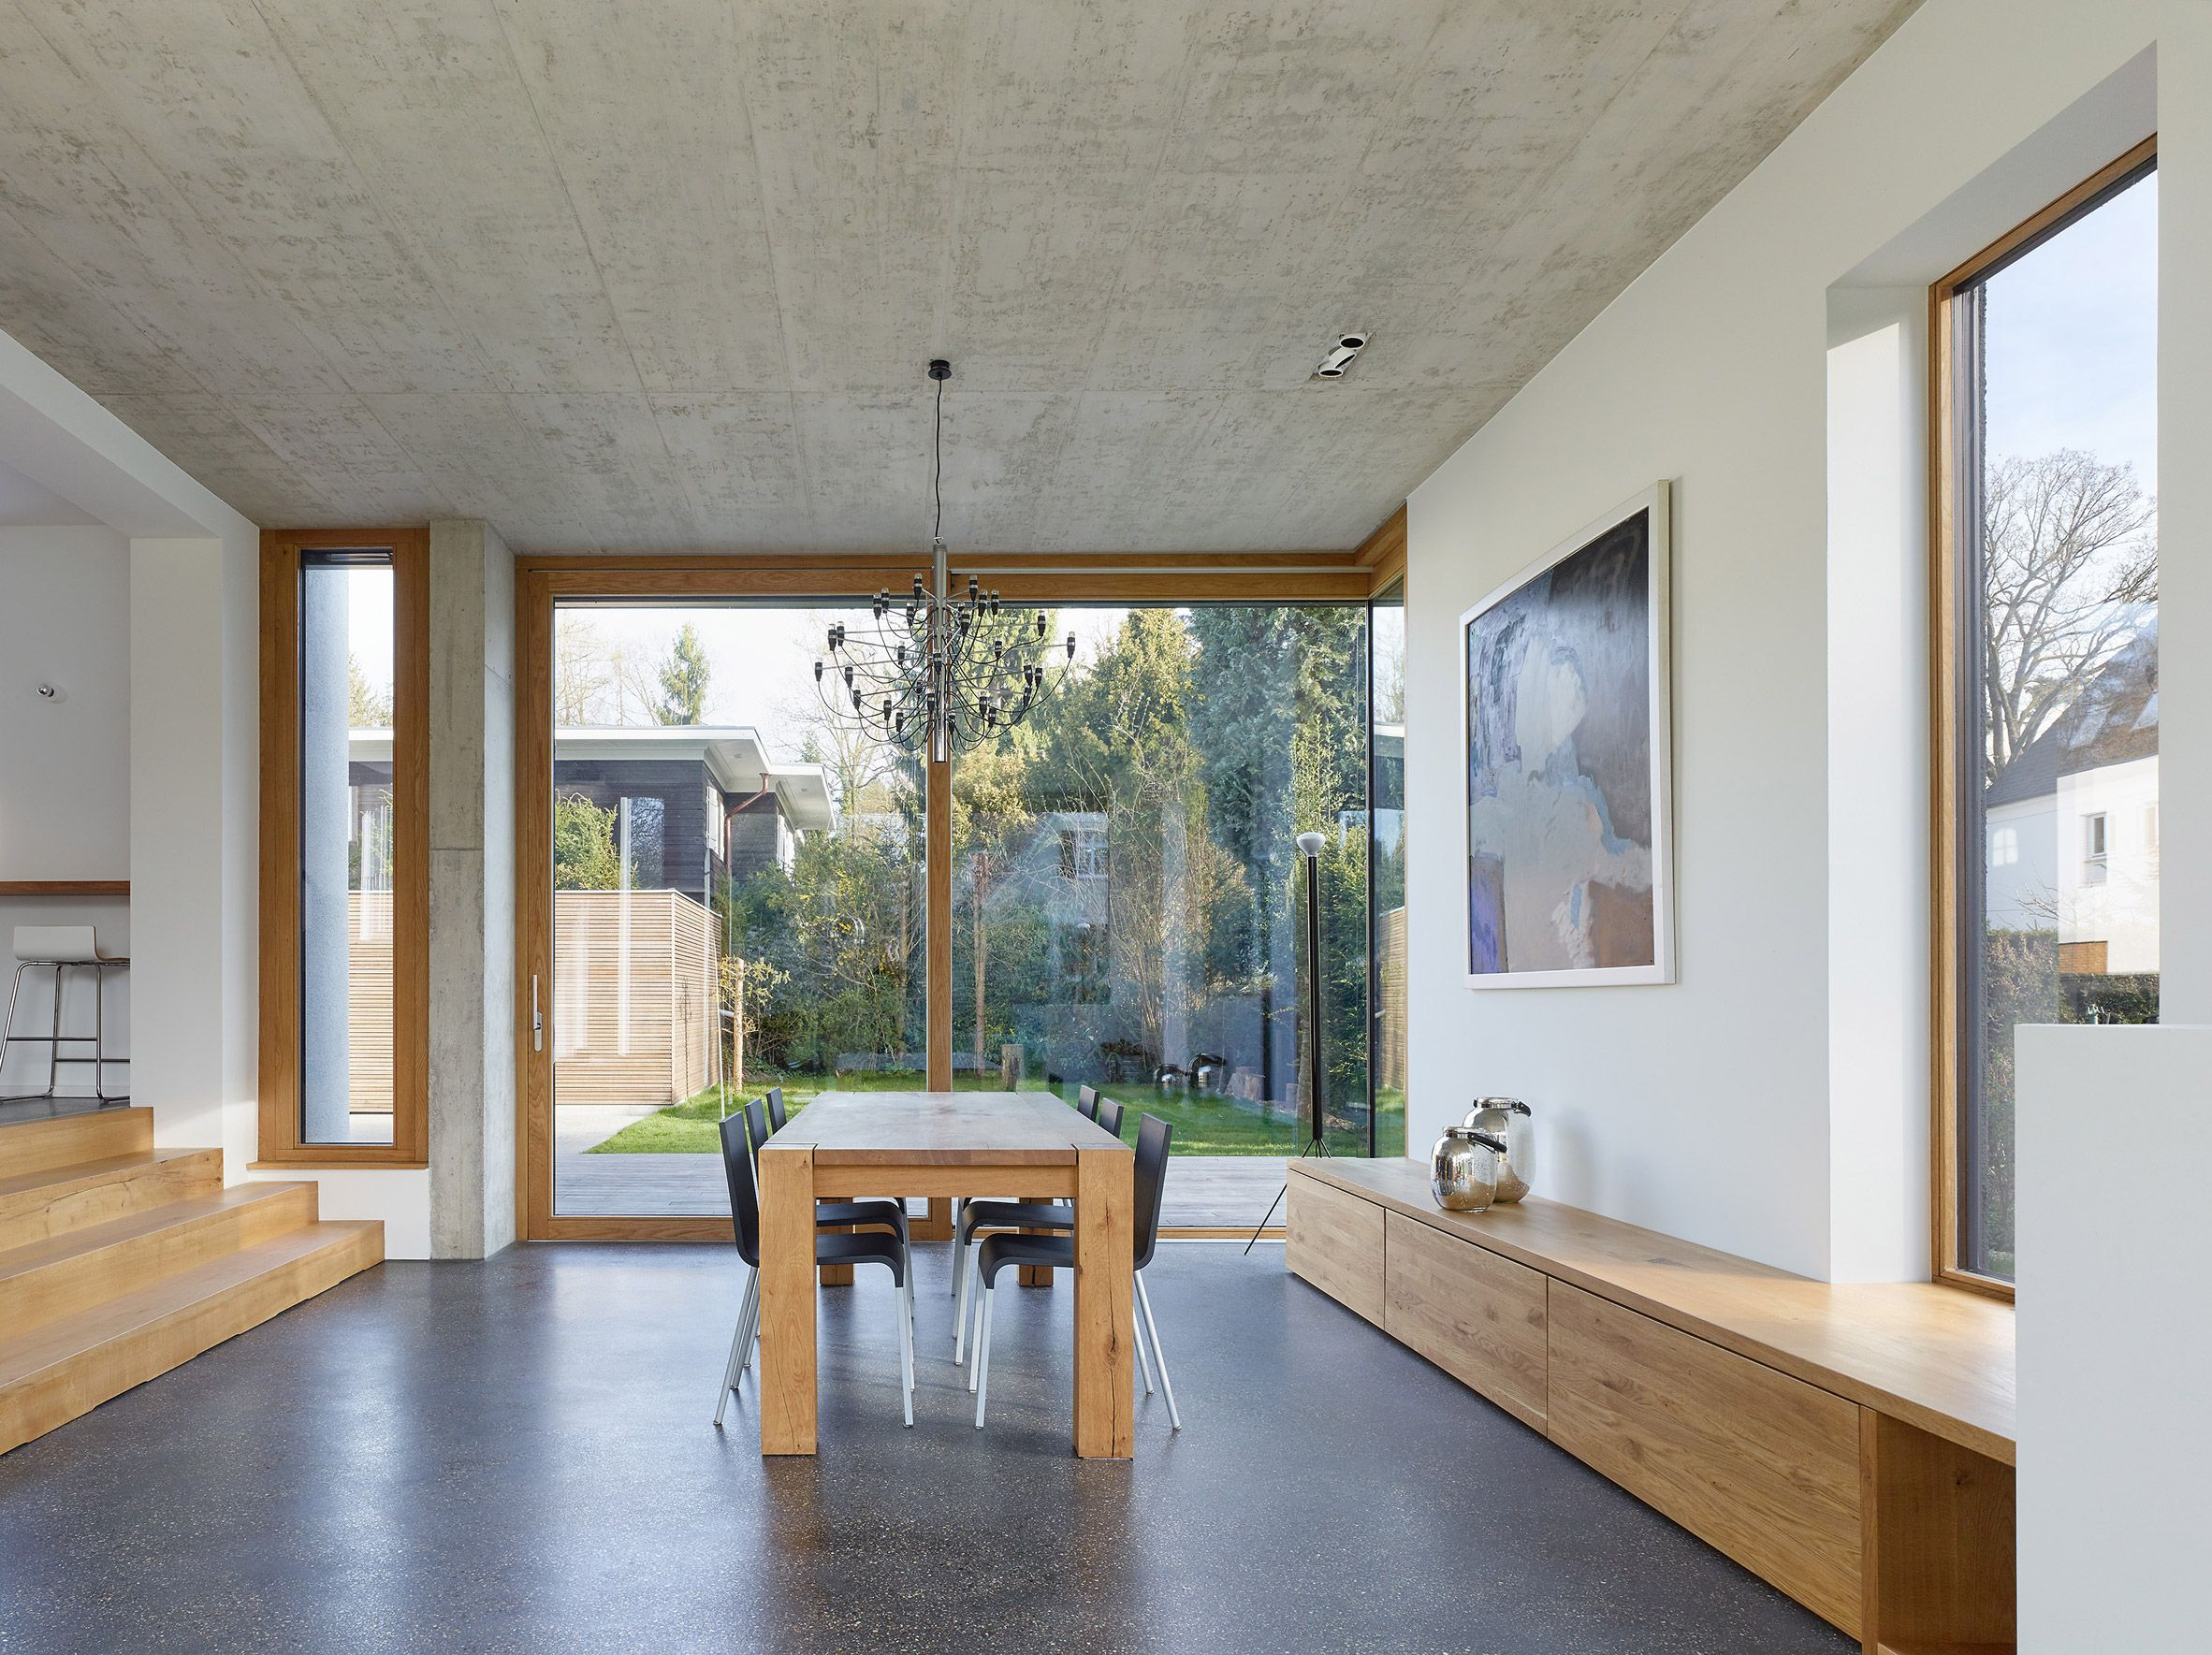 Floor To Ceiling Sliding Glass Doors Run The Length Of The Ground